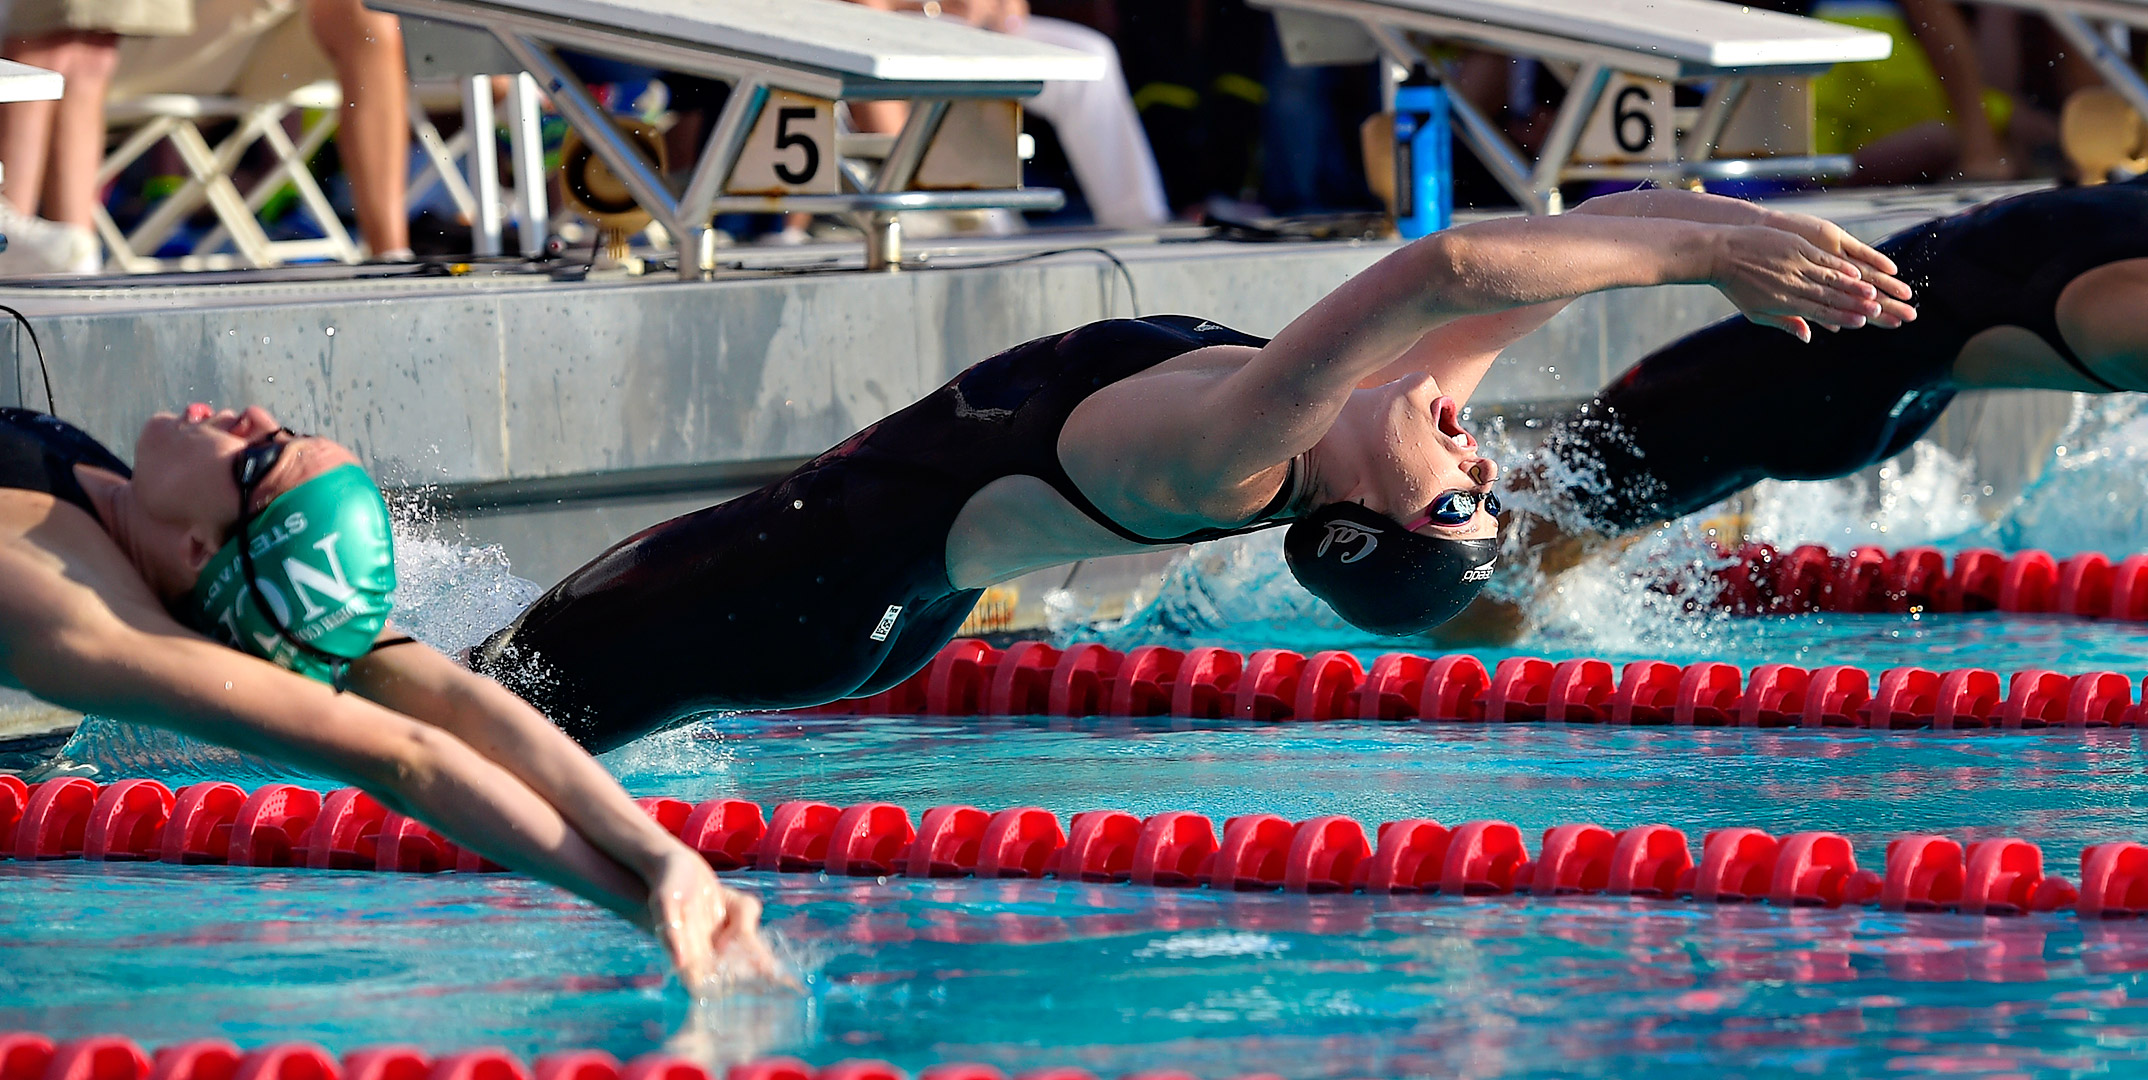 Missy Franklin, center, starts the women's 200-meter backstroke final alongside Kendyl Stewart, left, at the Los Angeles Invitational at USC in Los Angeles. Franklin won with a time of 2 minutes, 10.21 seconds.